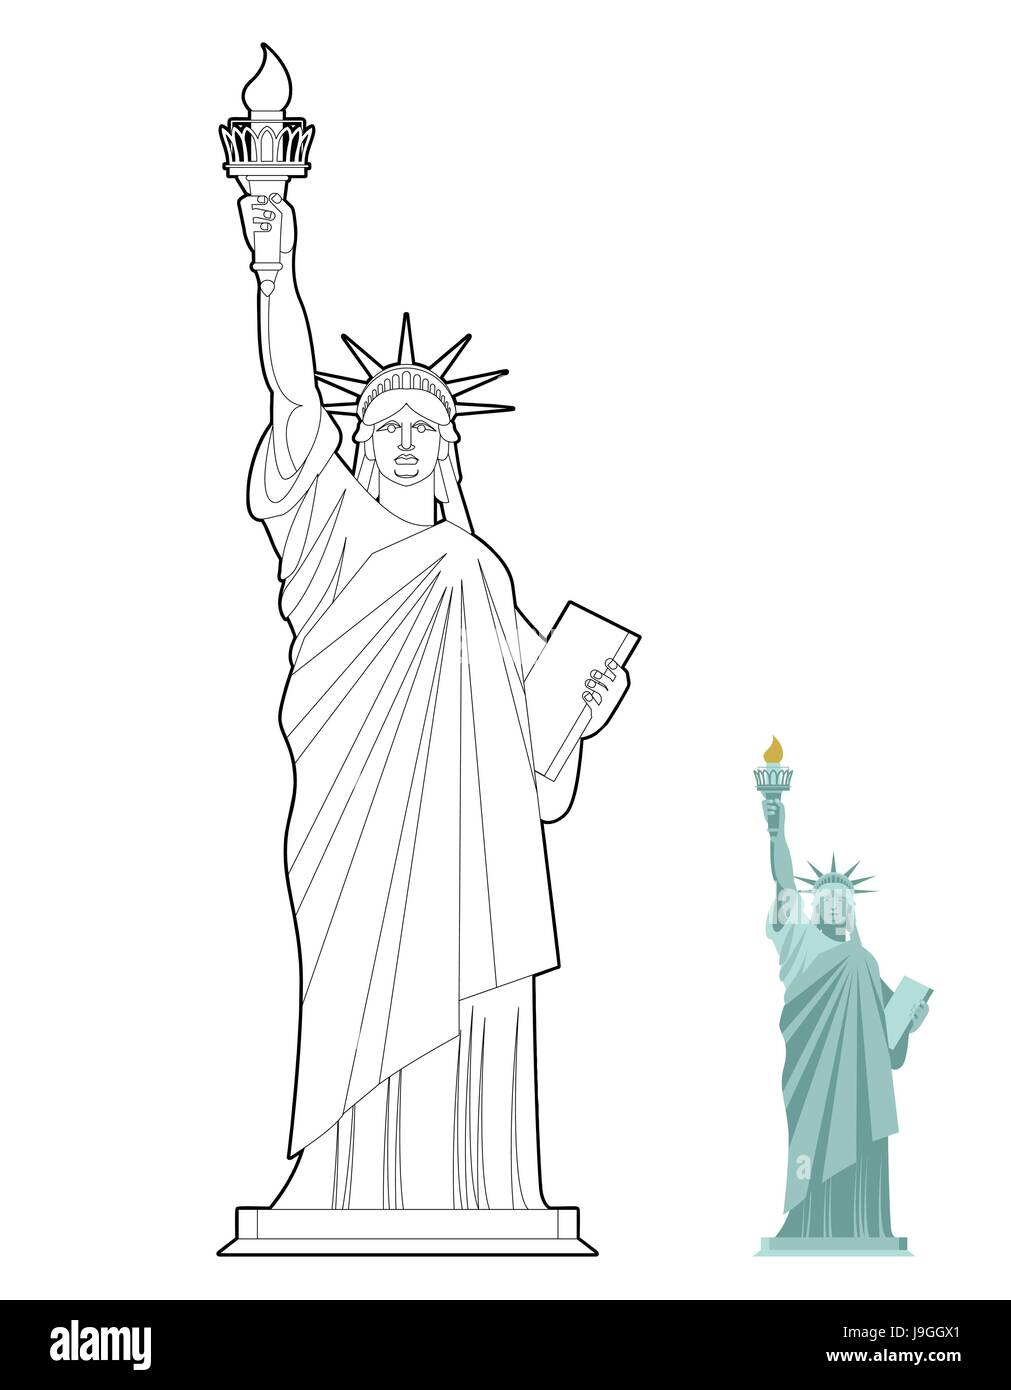 Statue Of Liberty Coloring Book Symbol Freedom And Democracy In USA Monument Architecture Linear Style Sculpture New York America